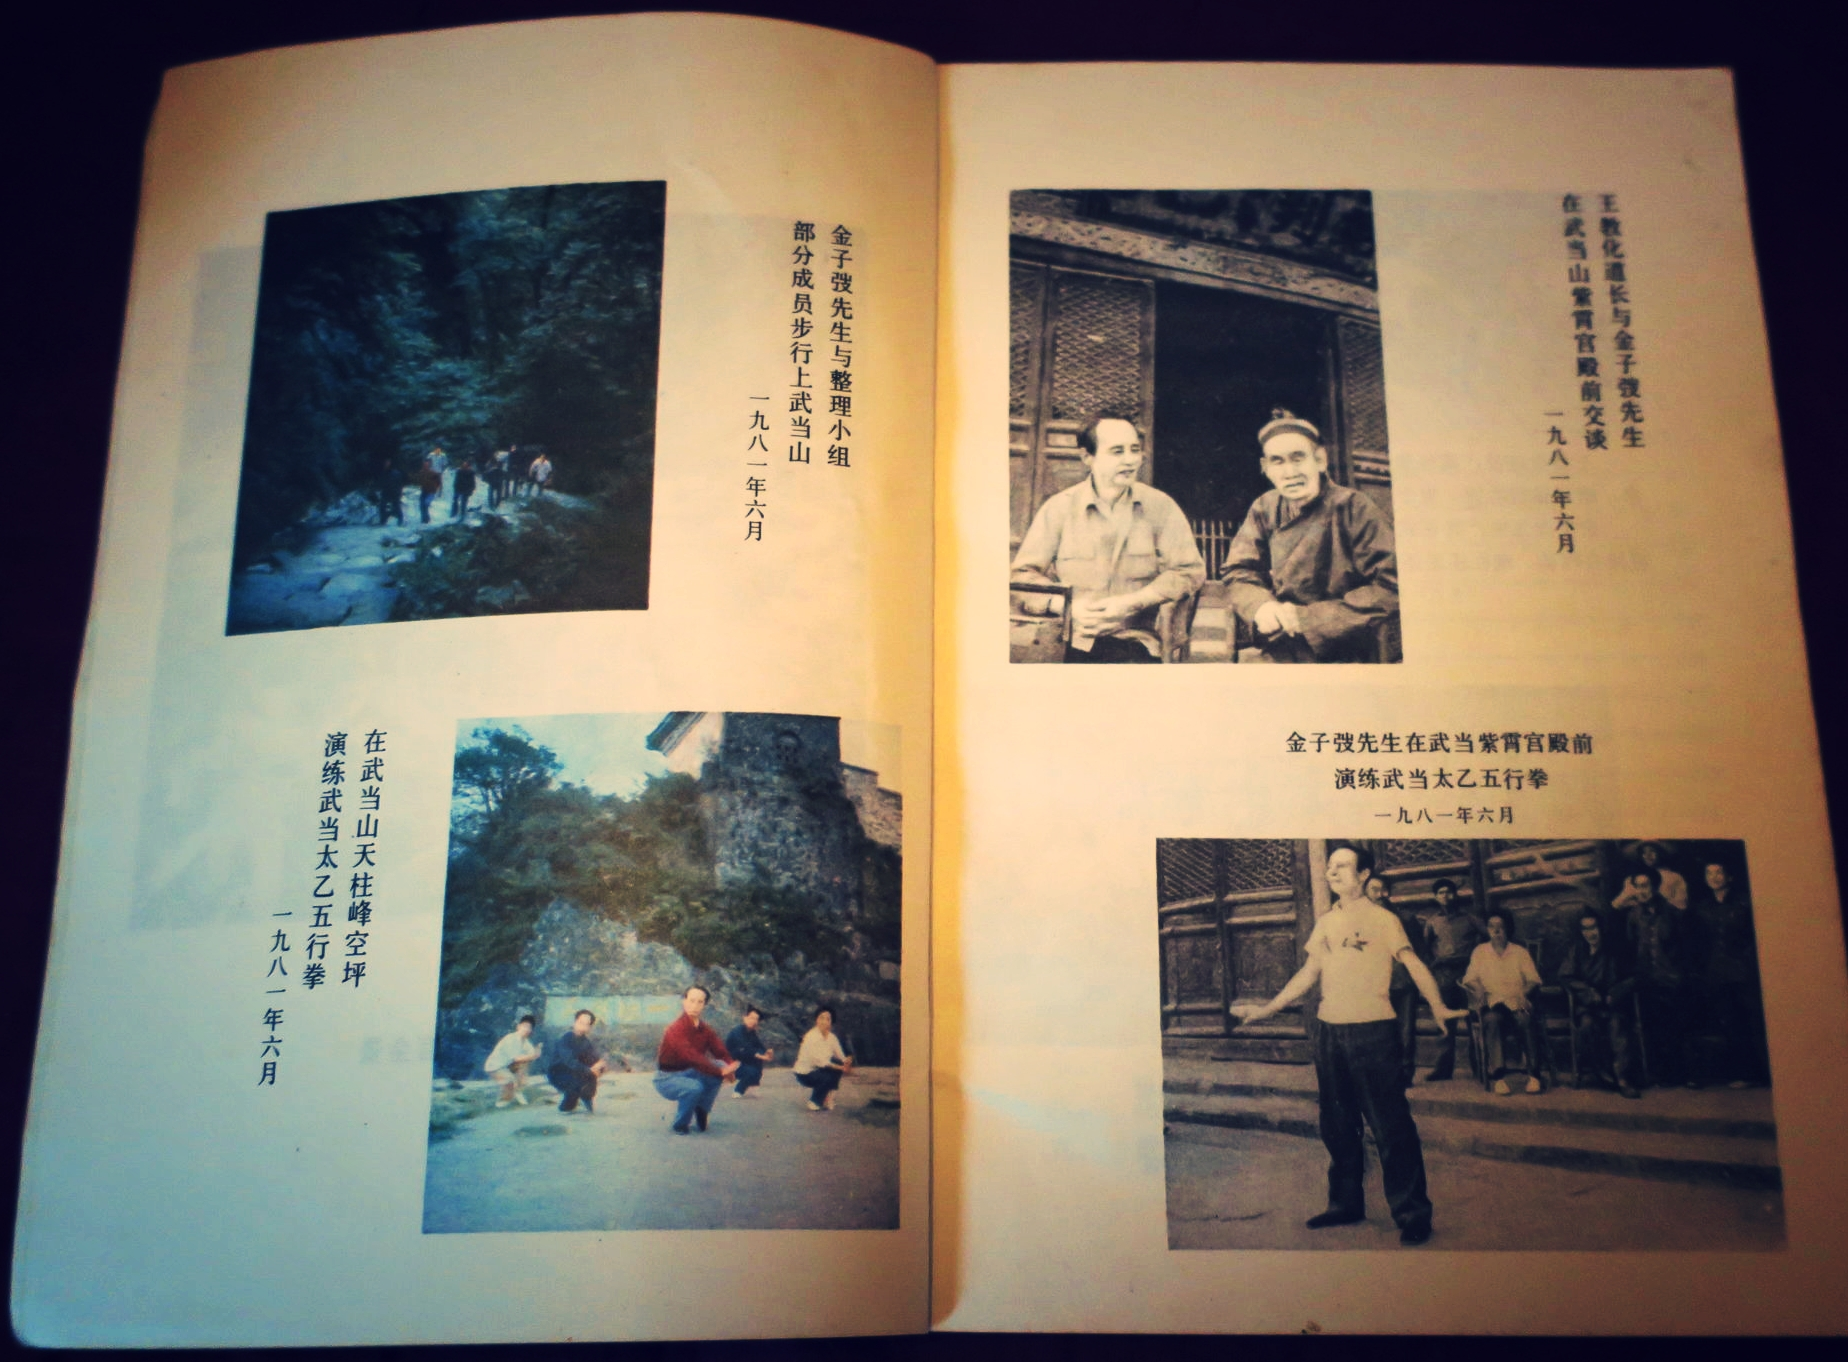 Master Jin Zi Tao 金子弢 returning Taiyiwuxingquan 太乙五行拳 to Purple Cloud Palace in 1981 from his book  Wudang Taiyi Wuxing Quan